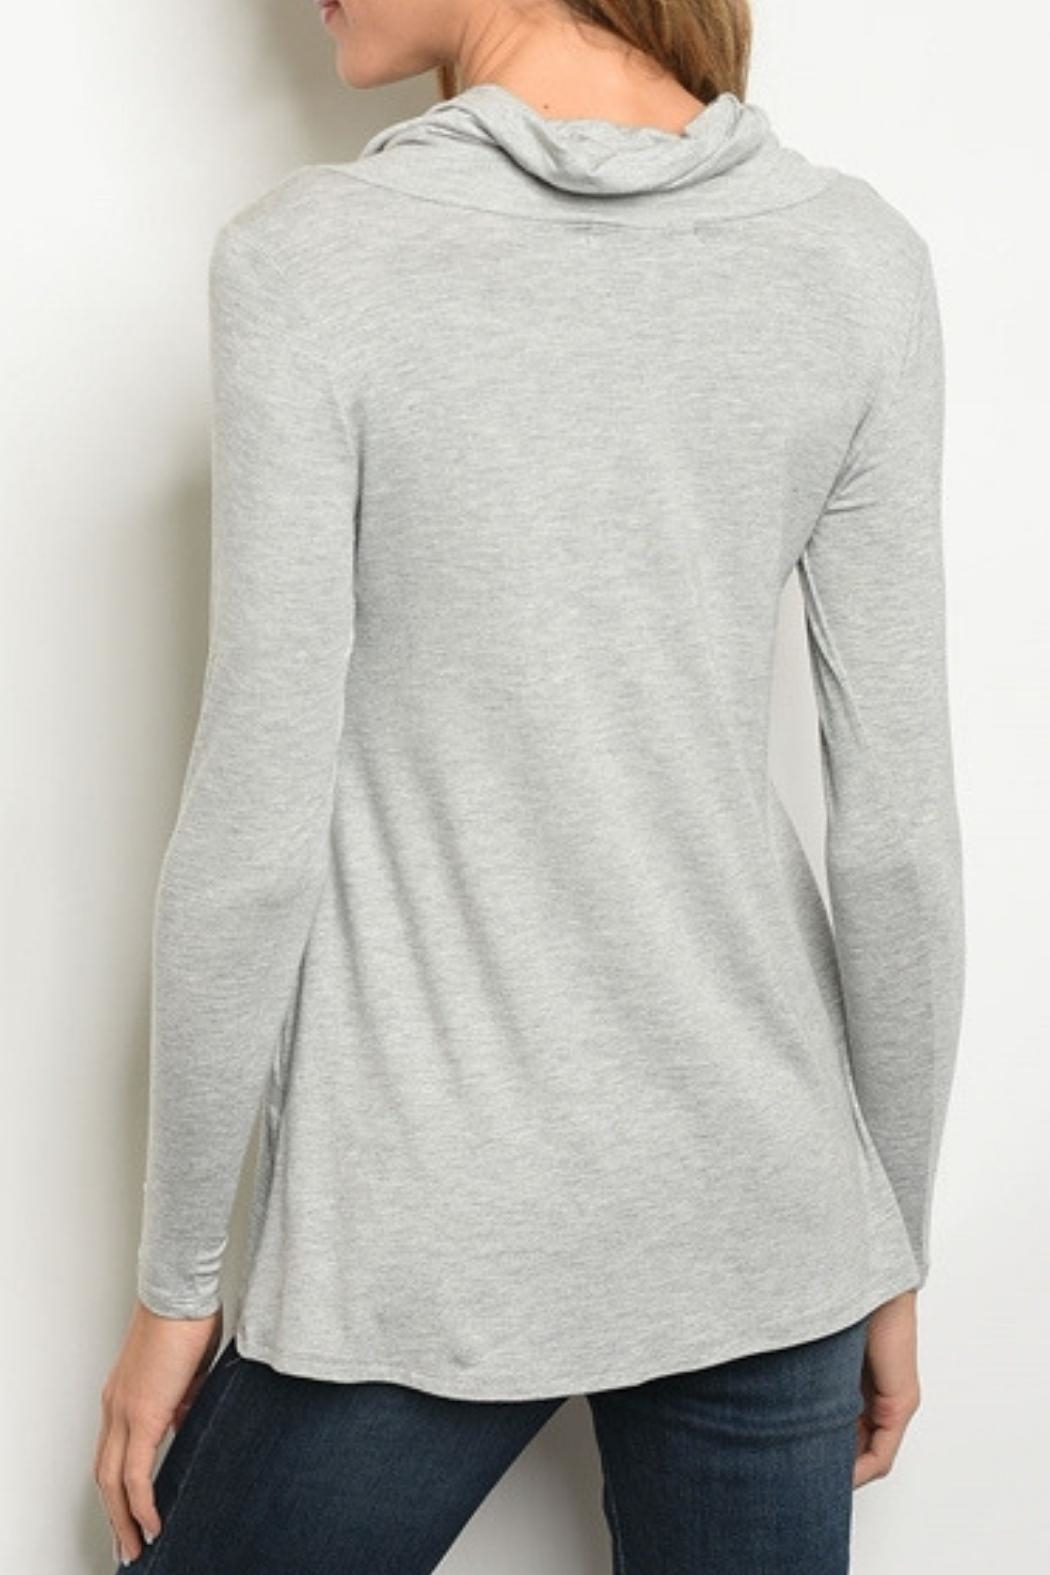 Les Amis Heather Grey Top - Front Full Image